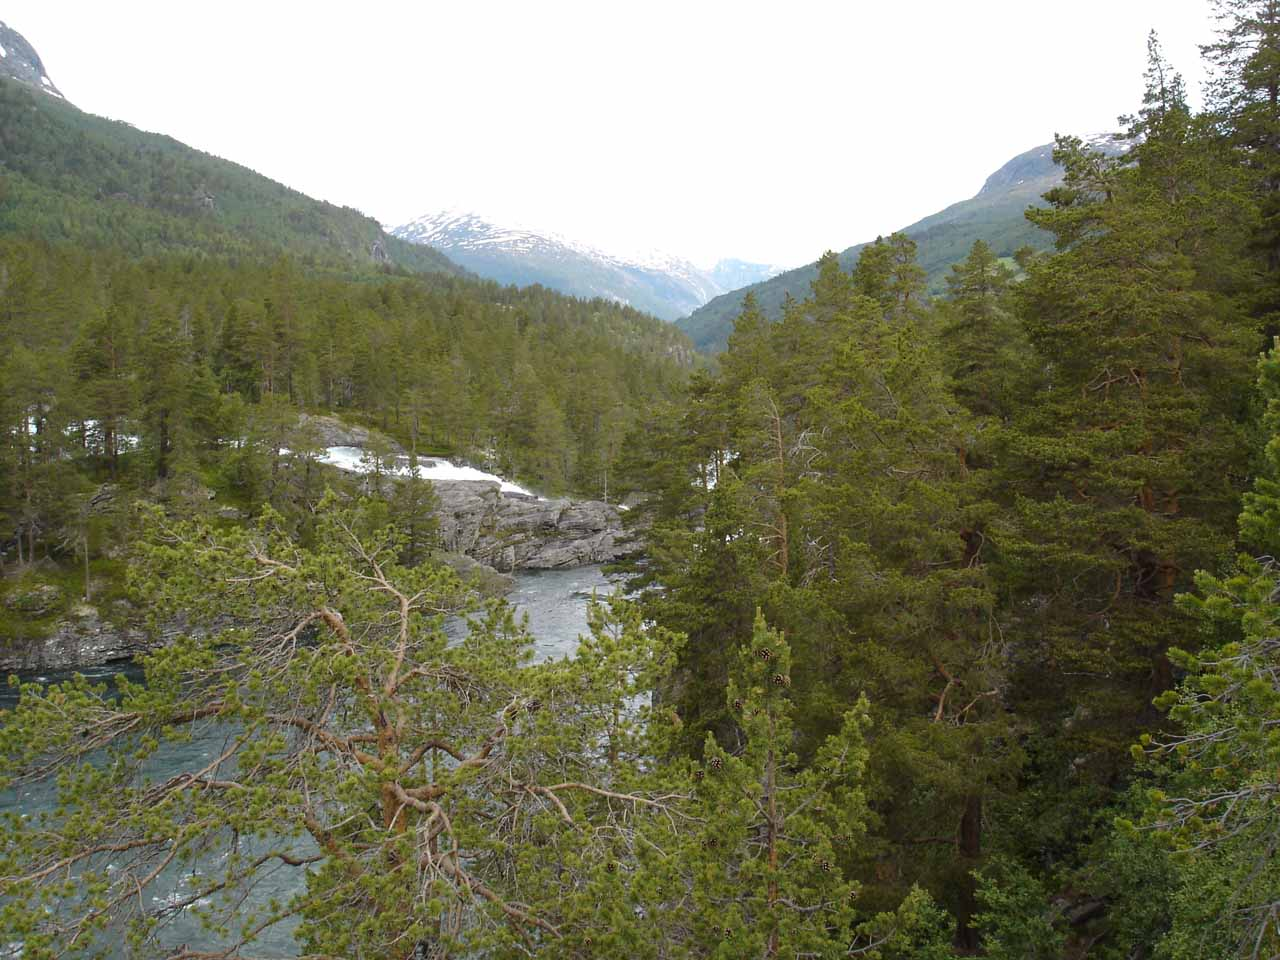 Looking downstream from Kleivafossen, Romsdalen looked like a broad valley, but as we headed further northwest, it would get narrow and dramatic real quick